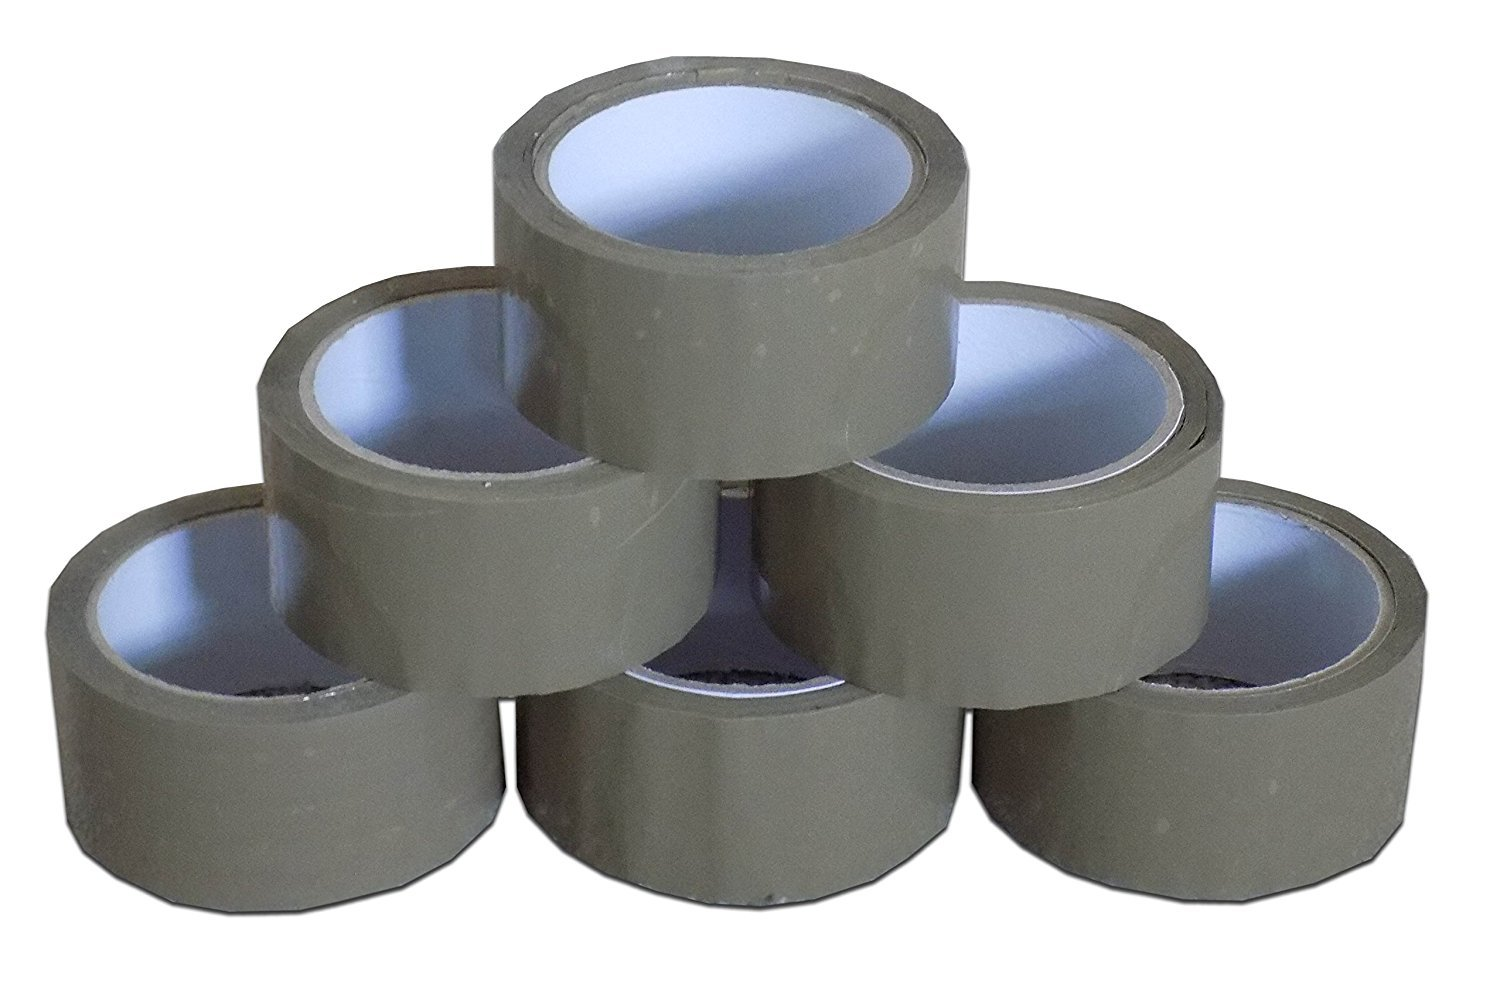 BROWN BUFF PACKING PACKAGING TAPE 6 ROLLS 50MM x 66M Realpack n.a